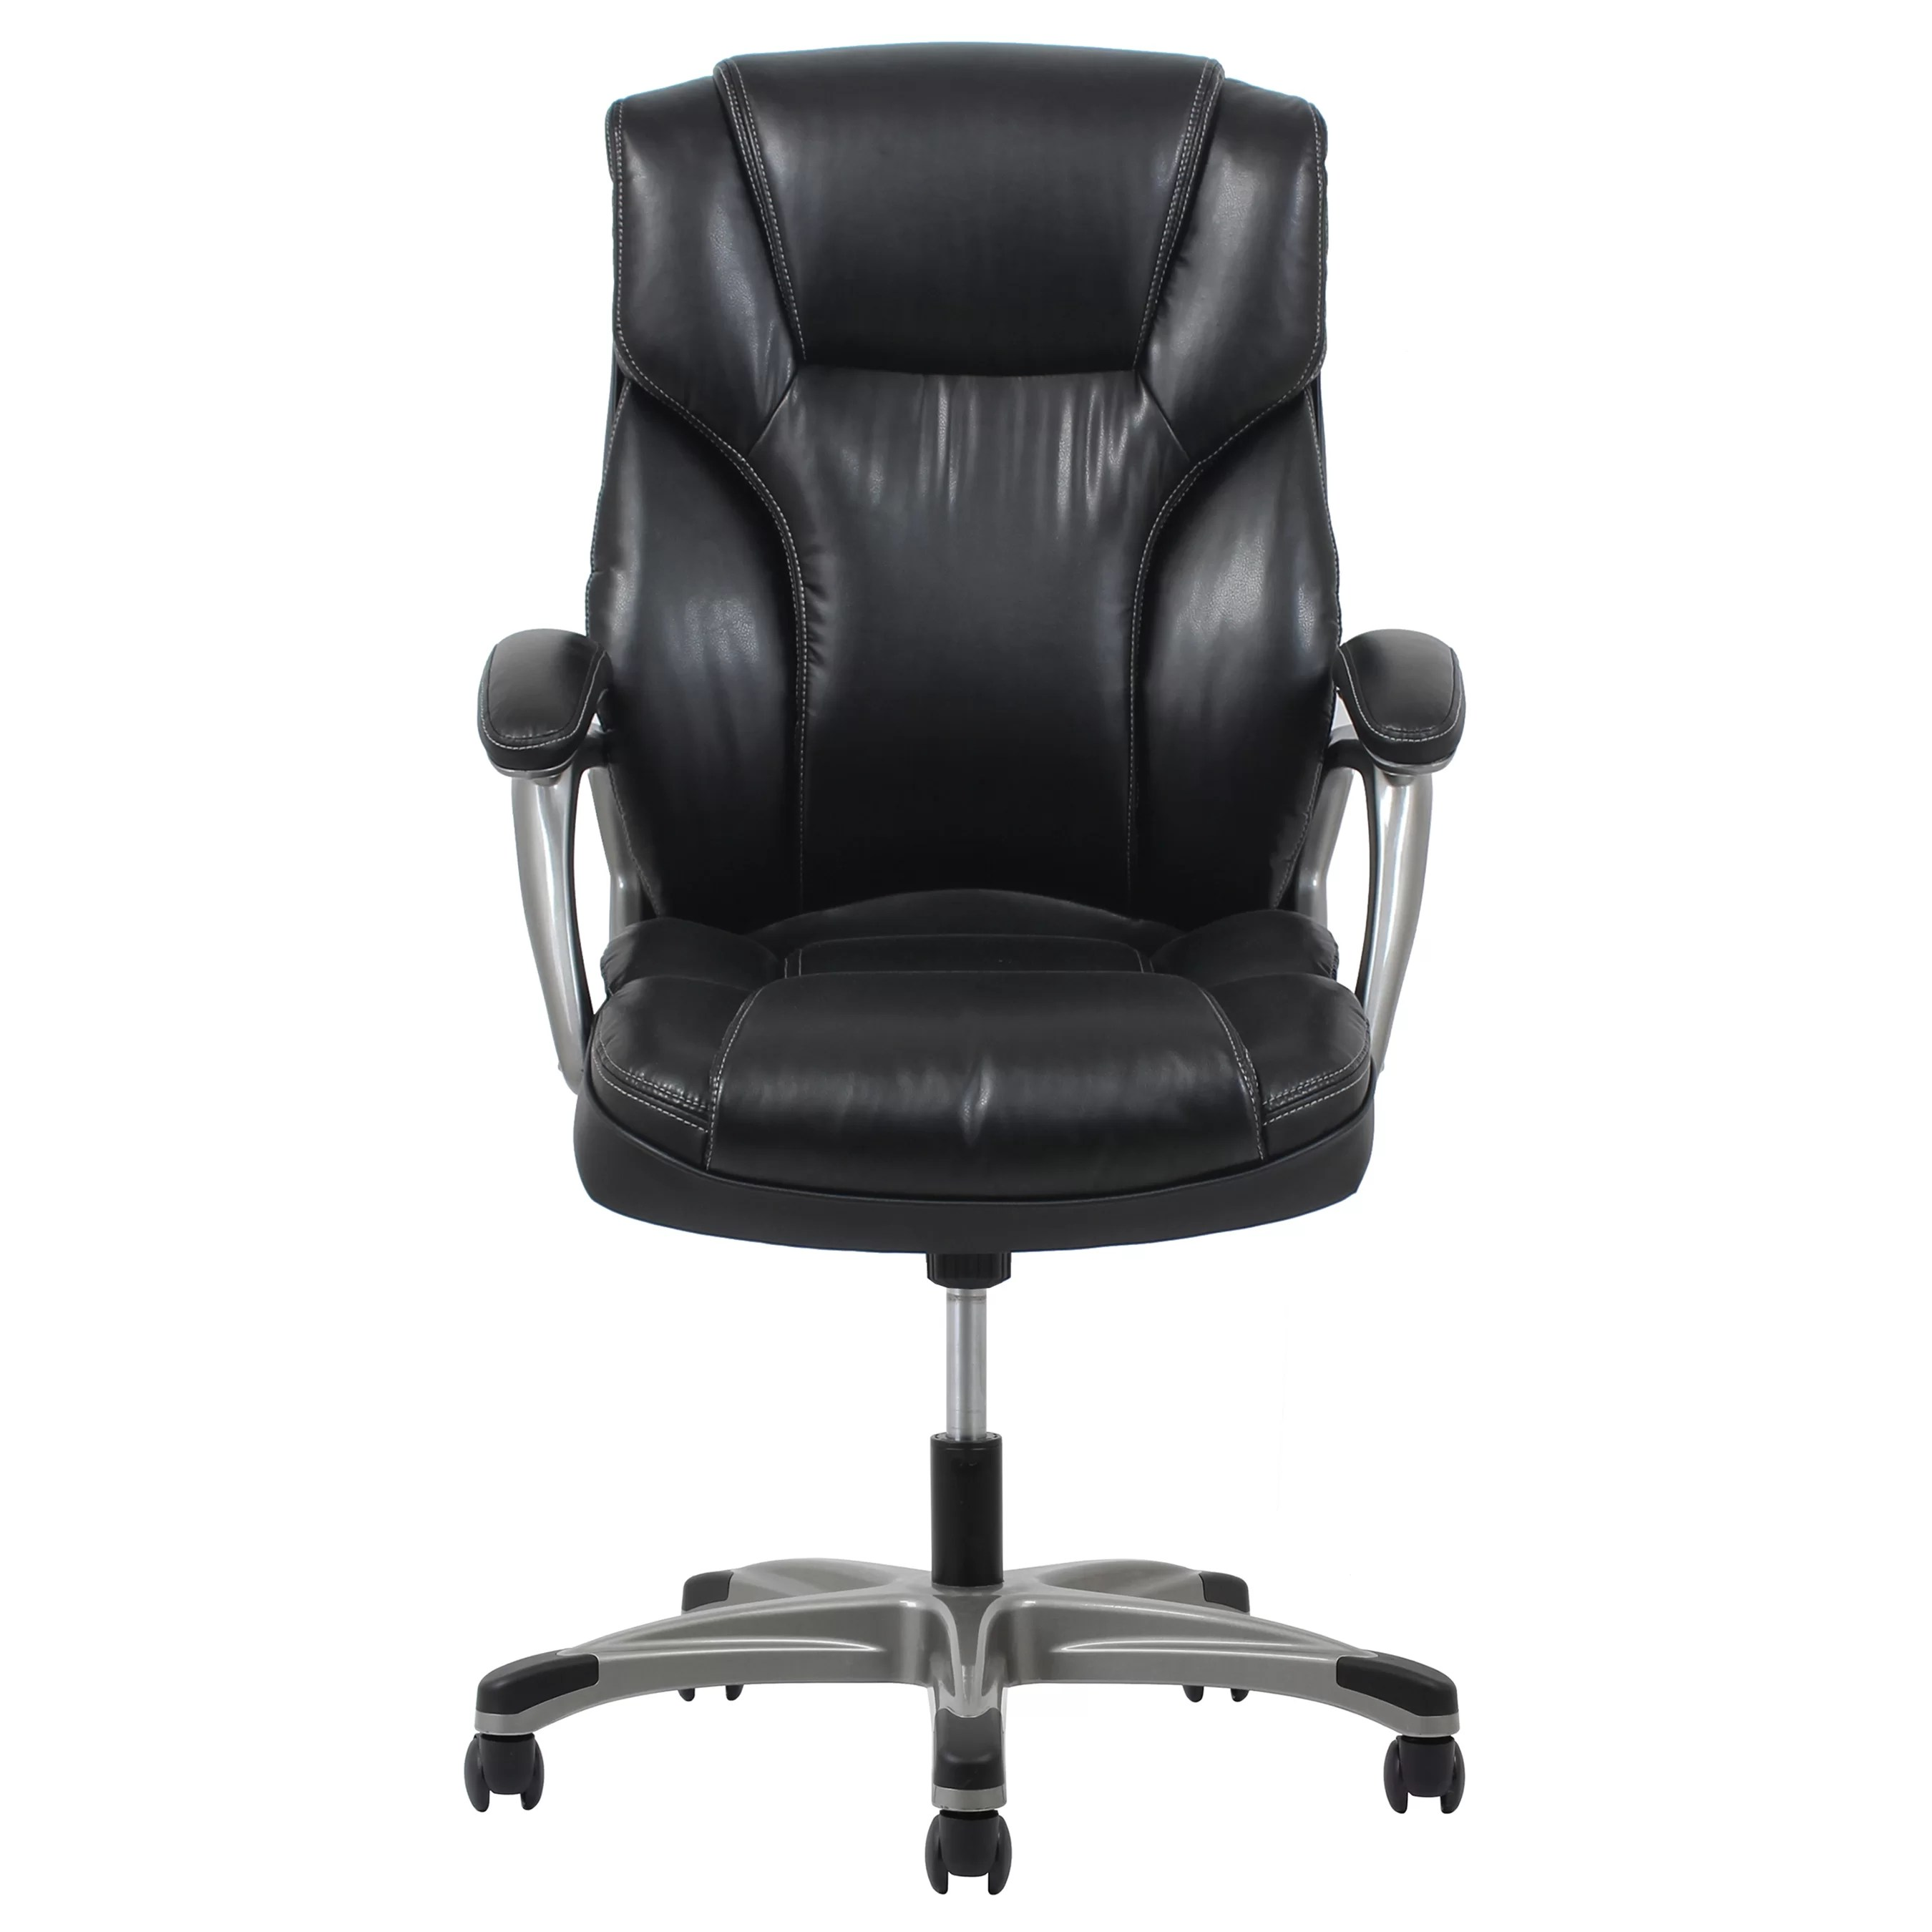 leather executive chair used tables and chairs for sale ofm essentials ergonomic reviews